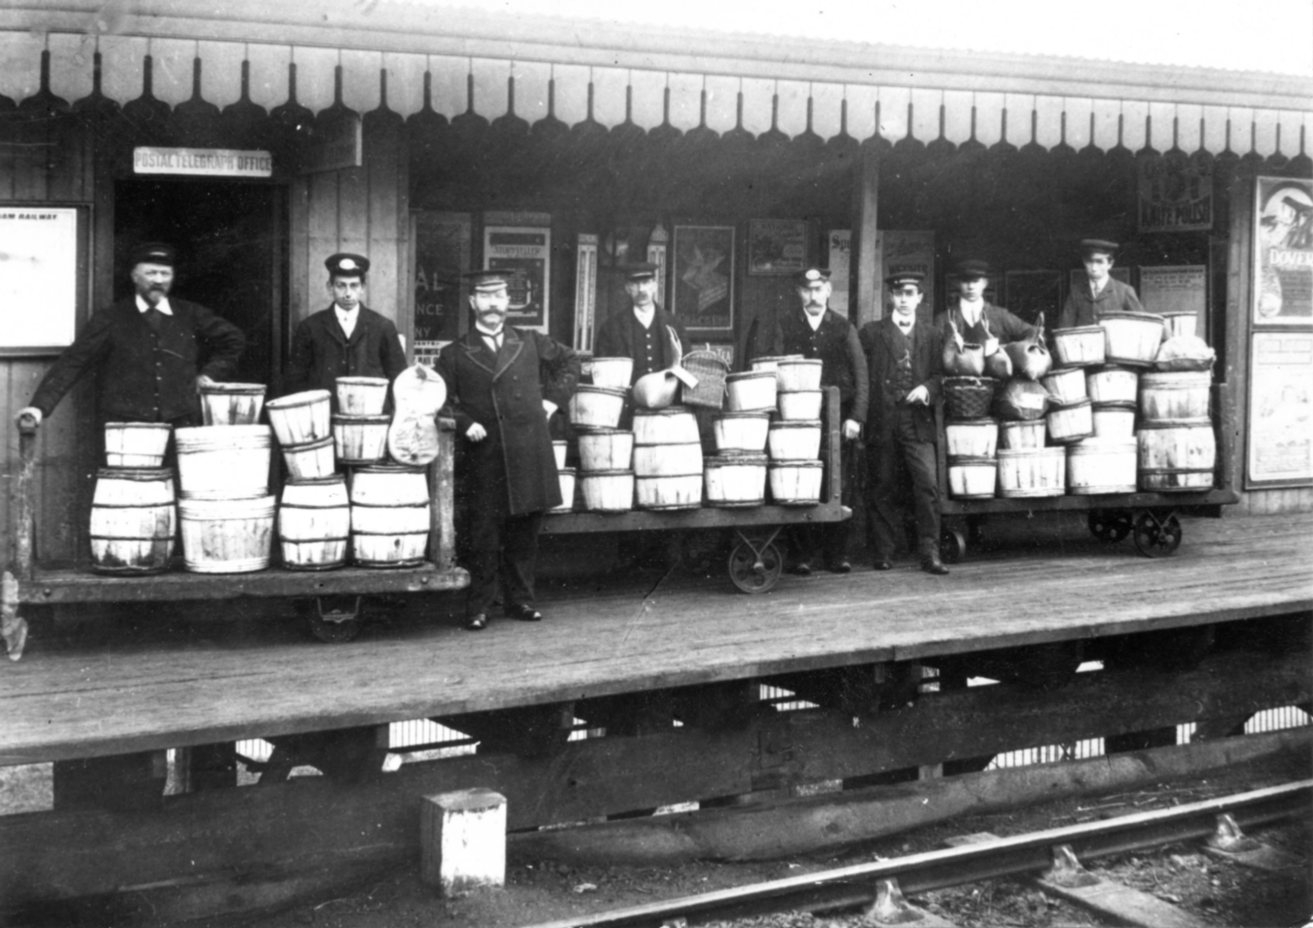 The Oyster Trade - Whitstable Town Station. Oysters awaiting shipment at Whistable Town Station. Photo from the Douglas West Collection. Courtesy of Whitstable Museum.